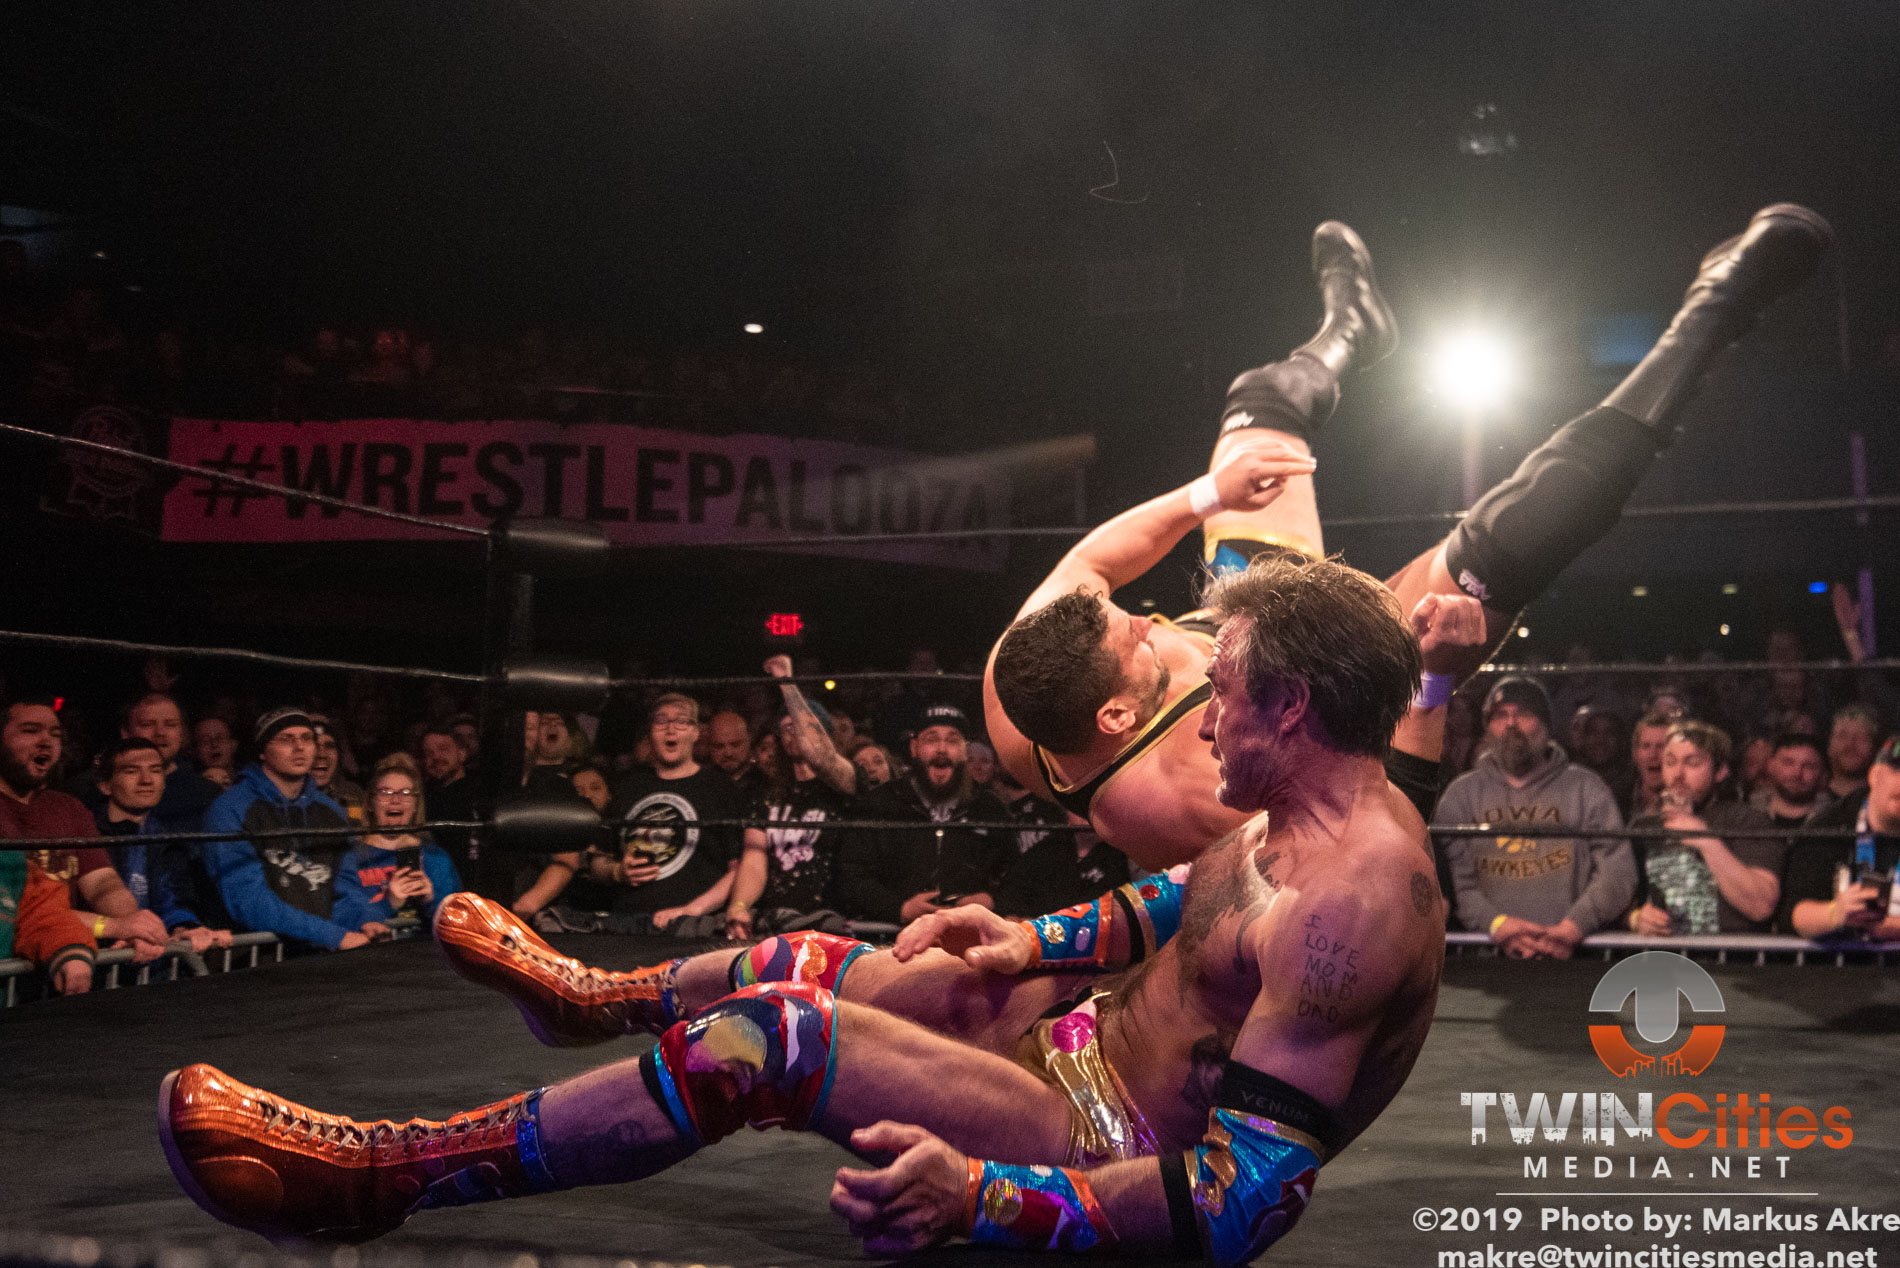 Wrestlepalooza - Match 3-3